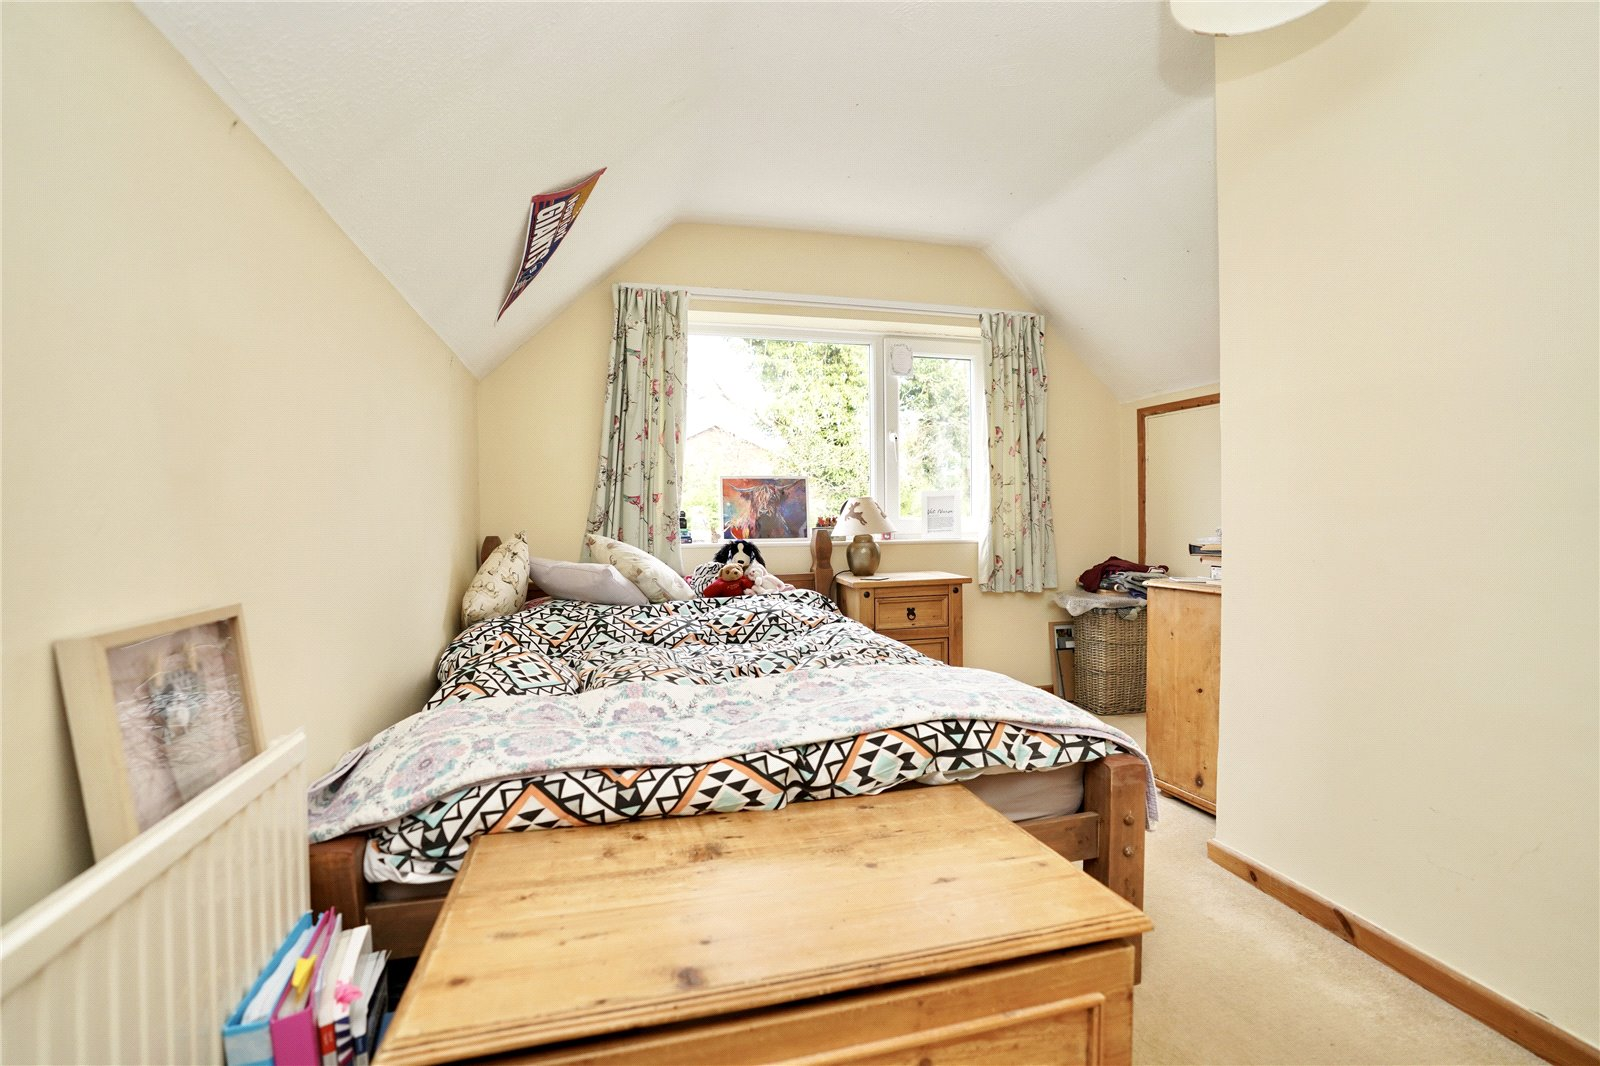 3 bed house for sale in Hemingford Grey, PE28 9BS  - Property Image 12